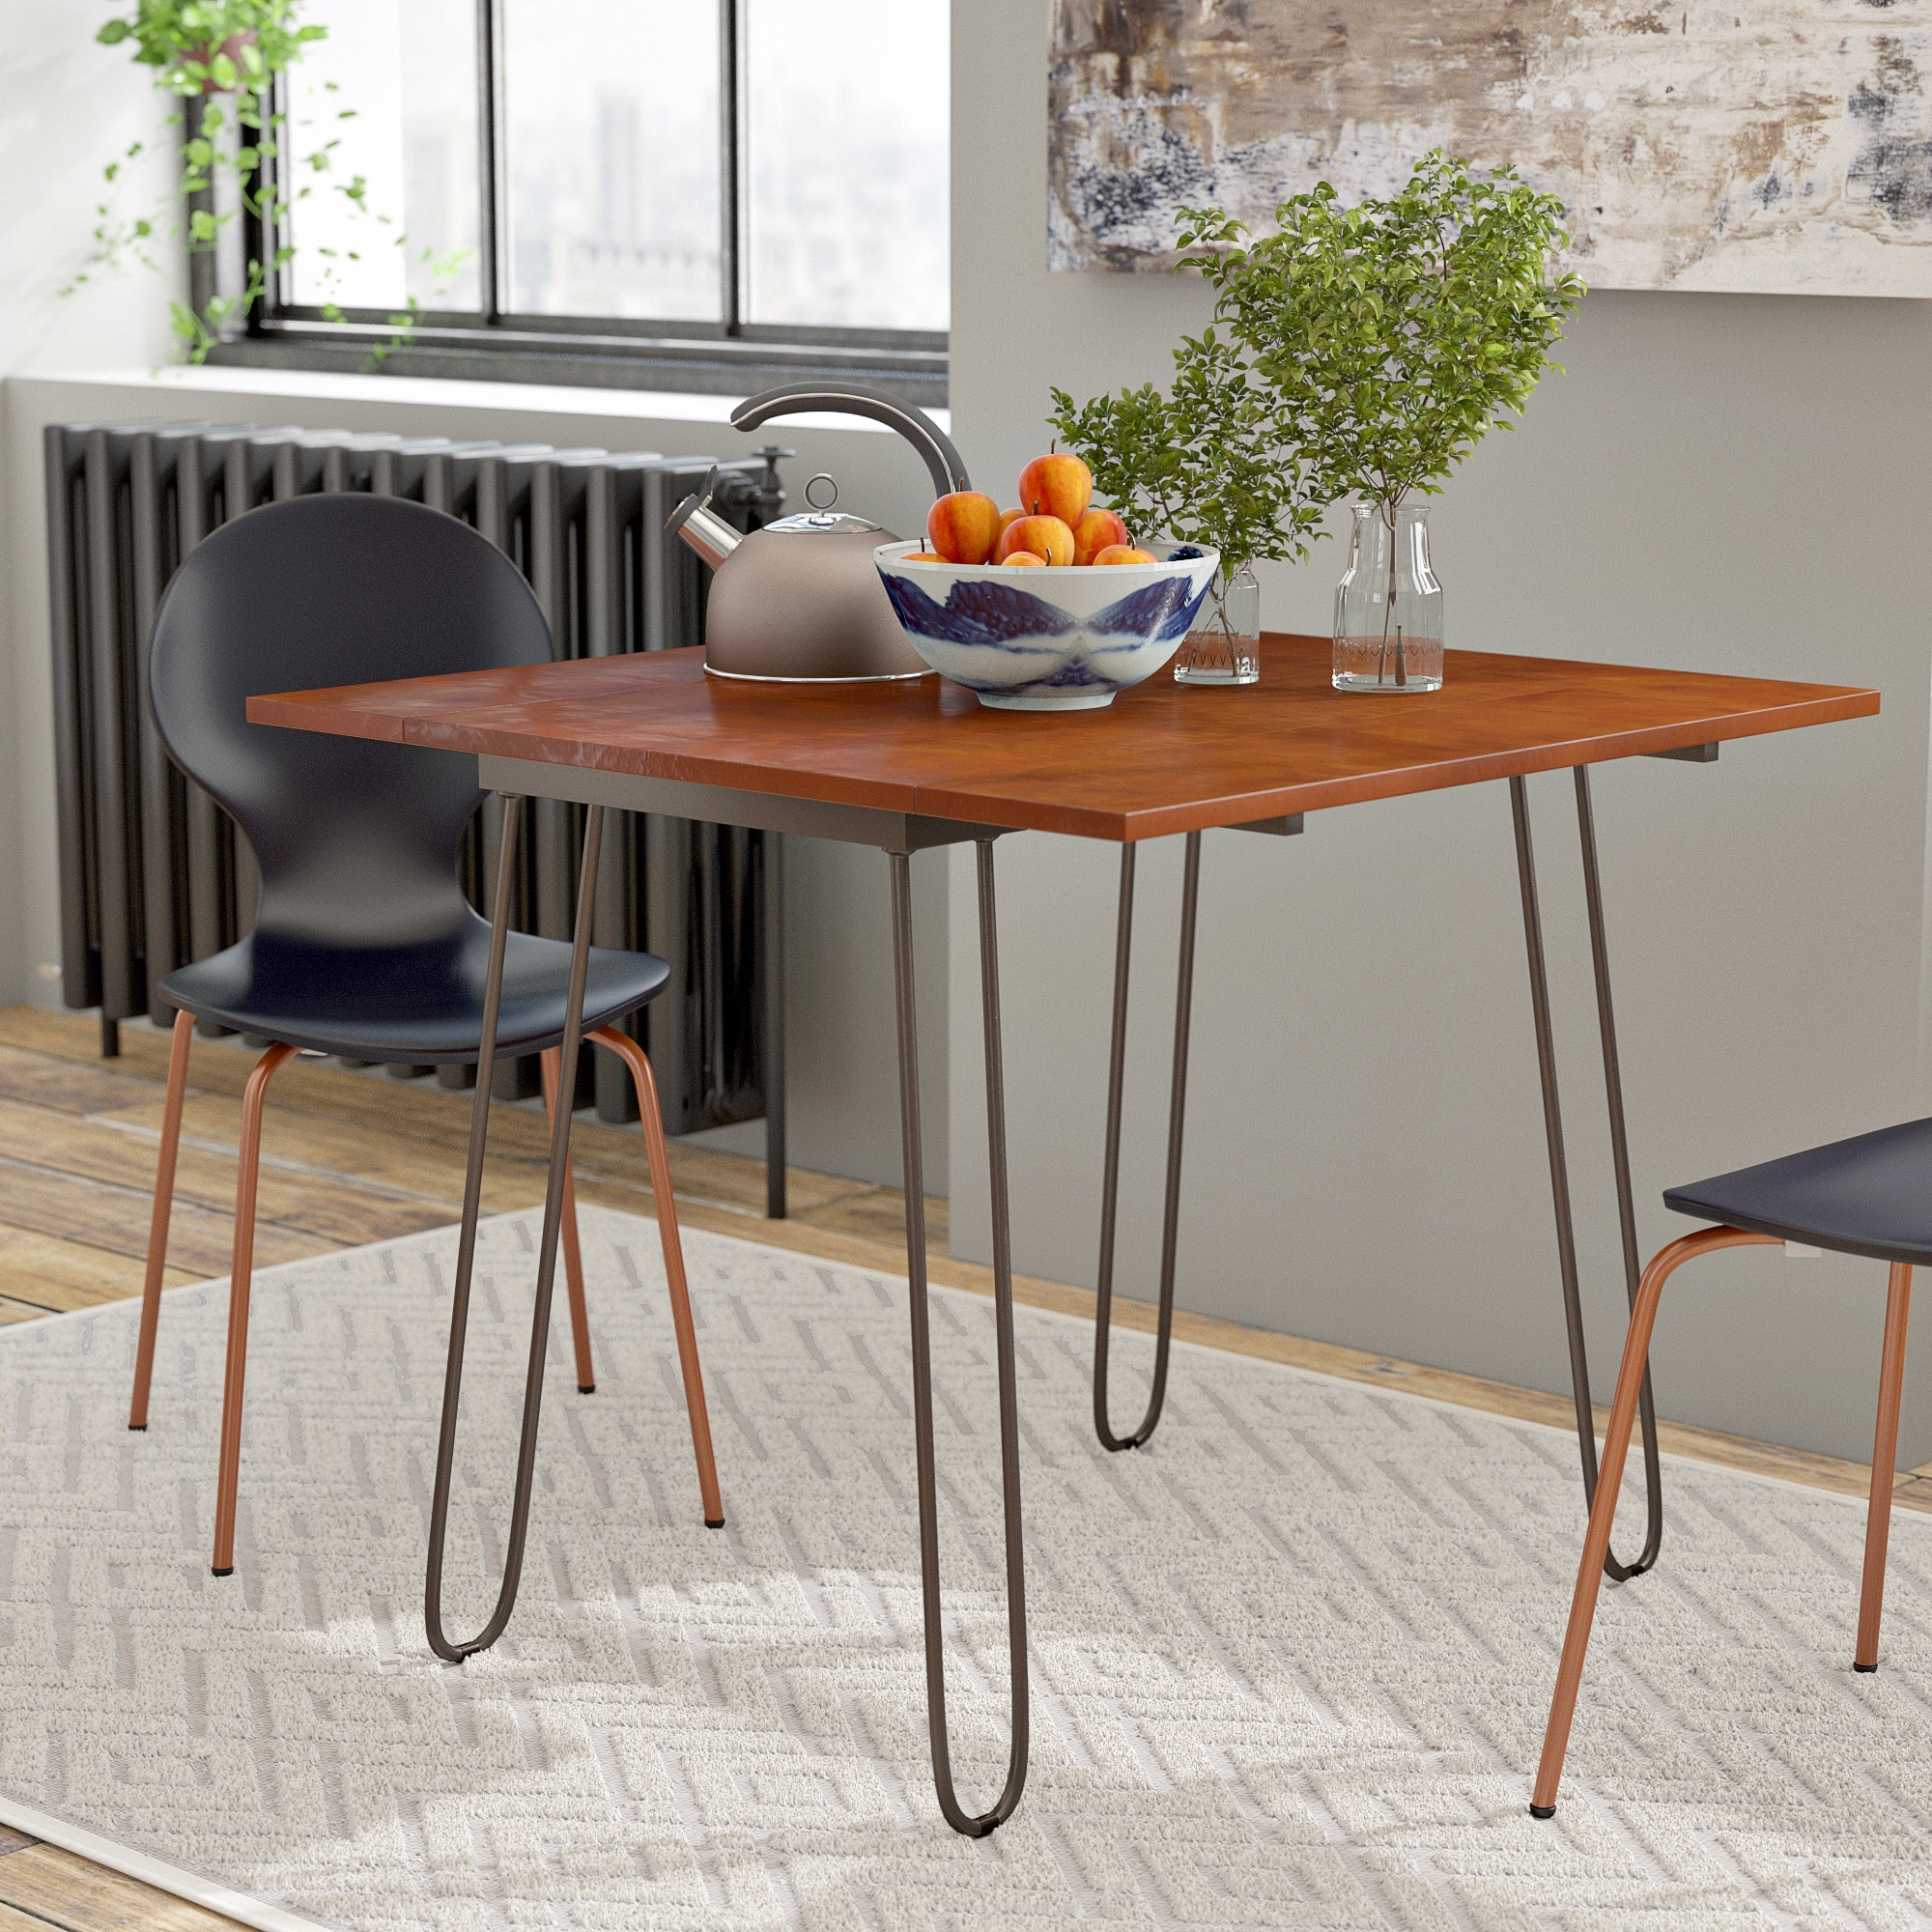 Cheap Drop Leaf Dining Tables In Most Recent Wrought Studio Parikh Drop Leaf Dining Table With Hairpin Legs (View 12 of 25)